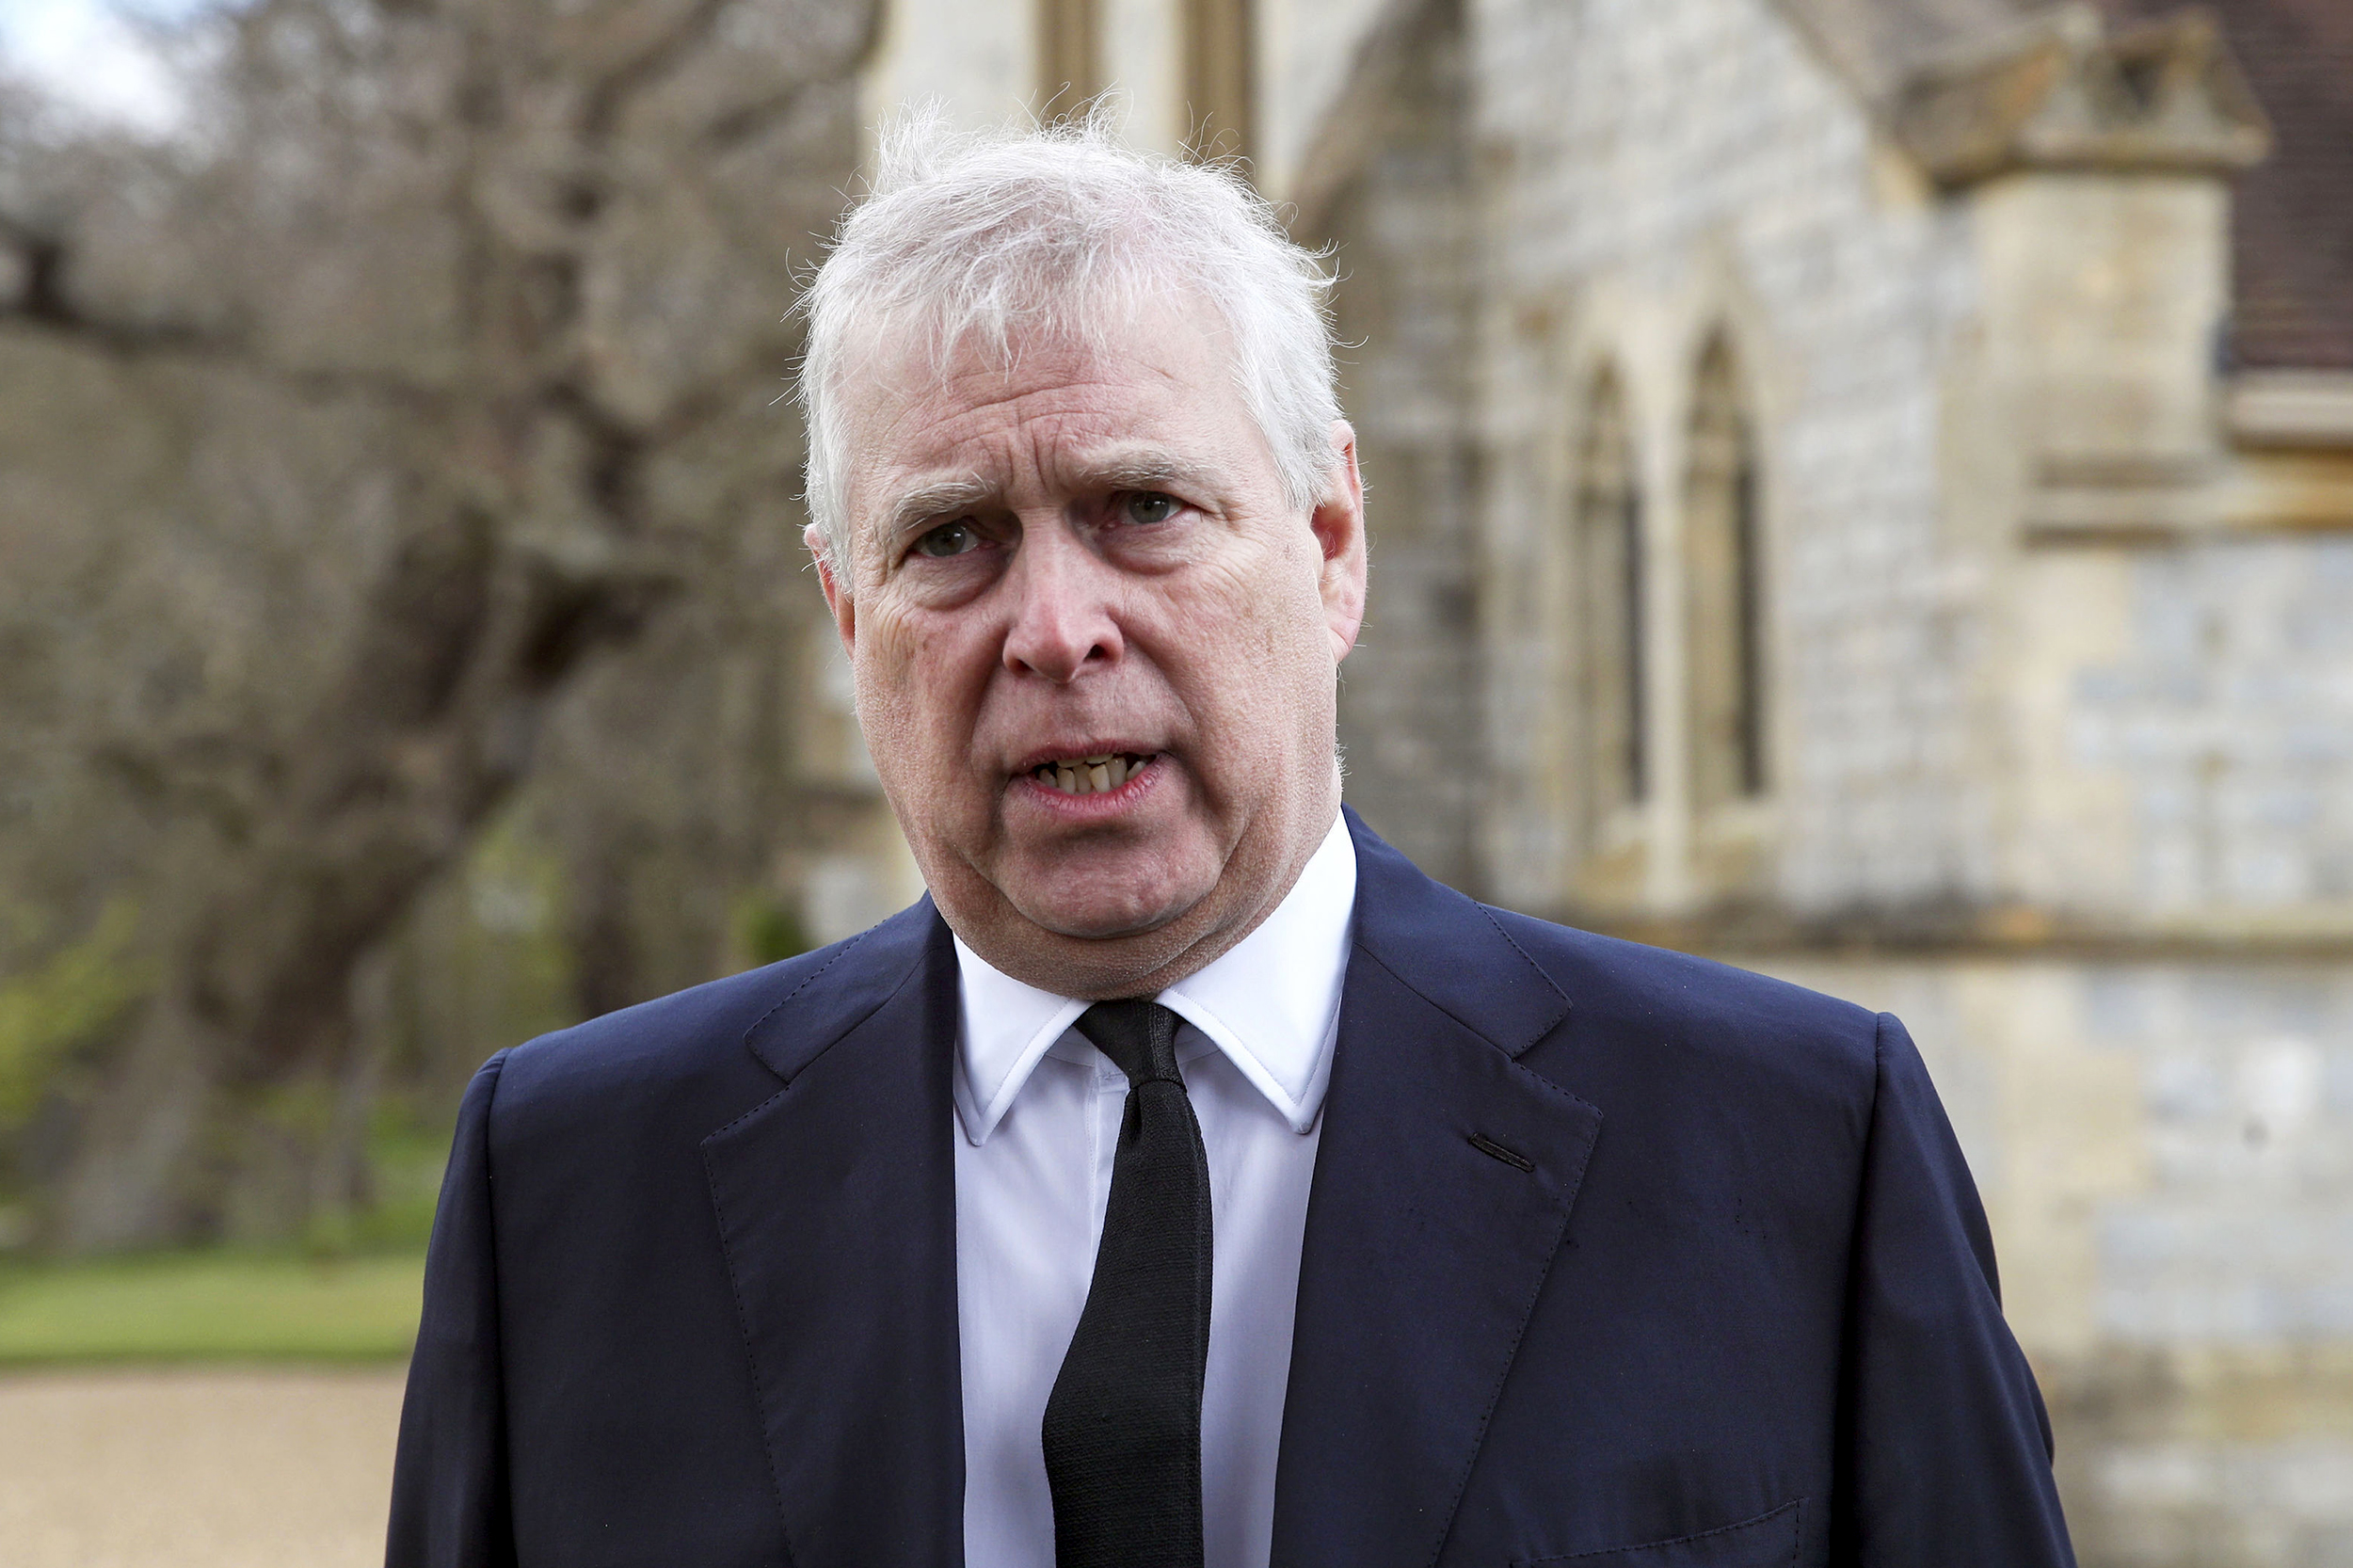 Lawyer for Prince Andrew vows he'll fight 'baseless' lawsuit that accuses him of sex abuse